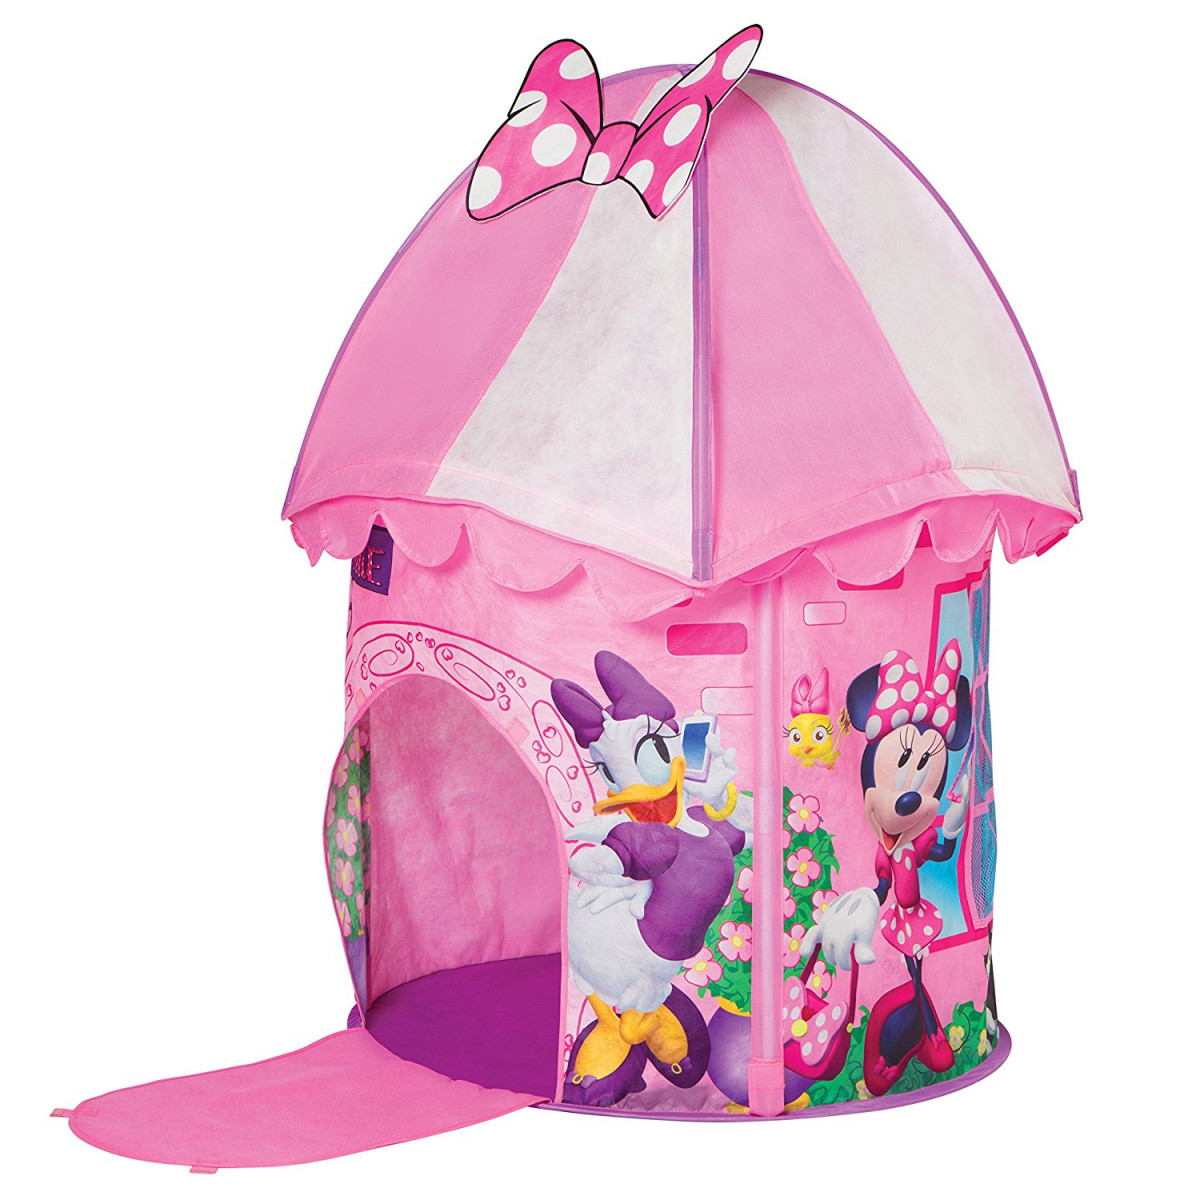 Tente de jeux Pop Up boutique Minnie Mouse Disney